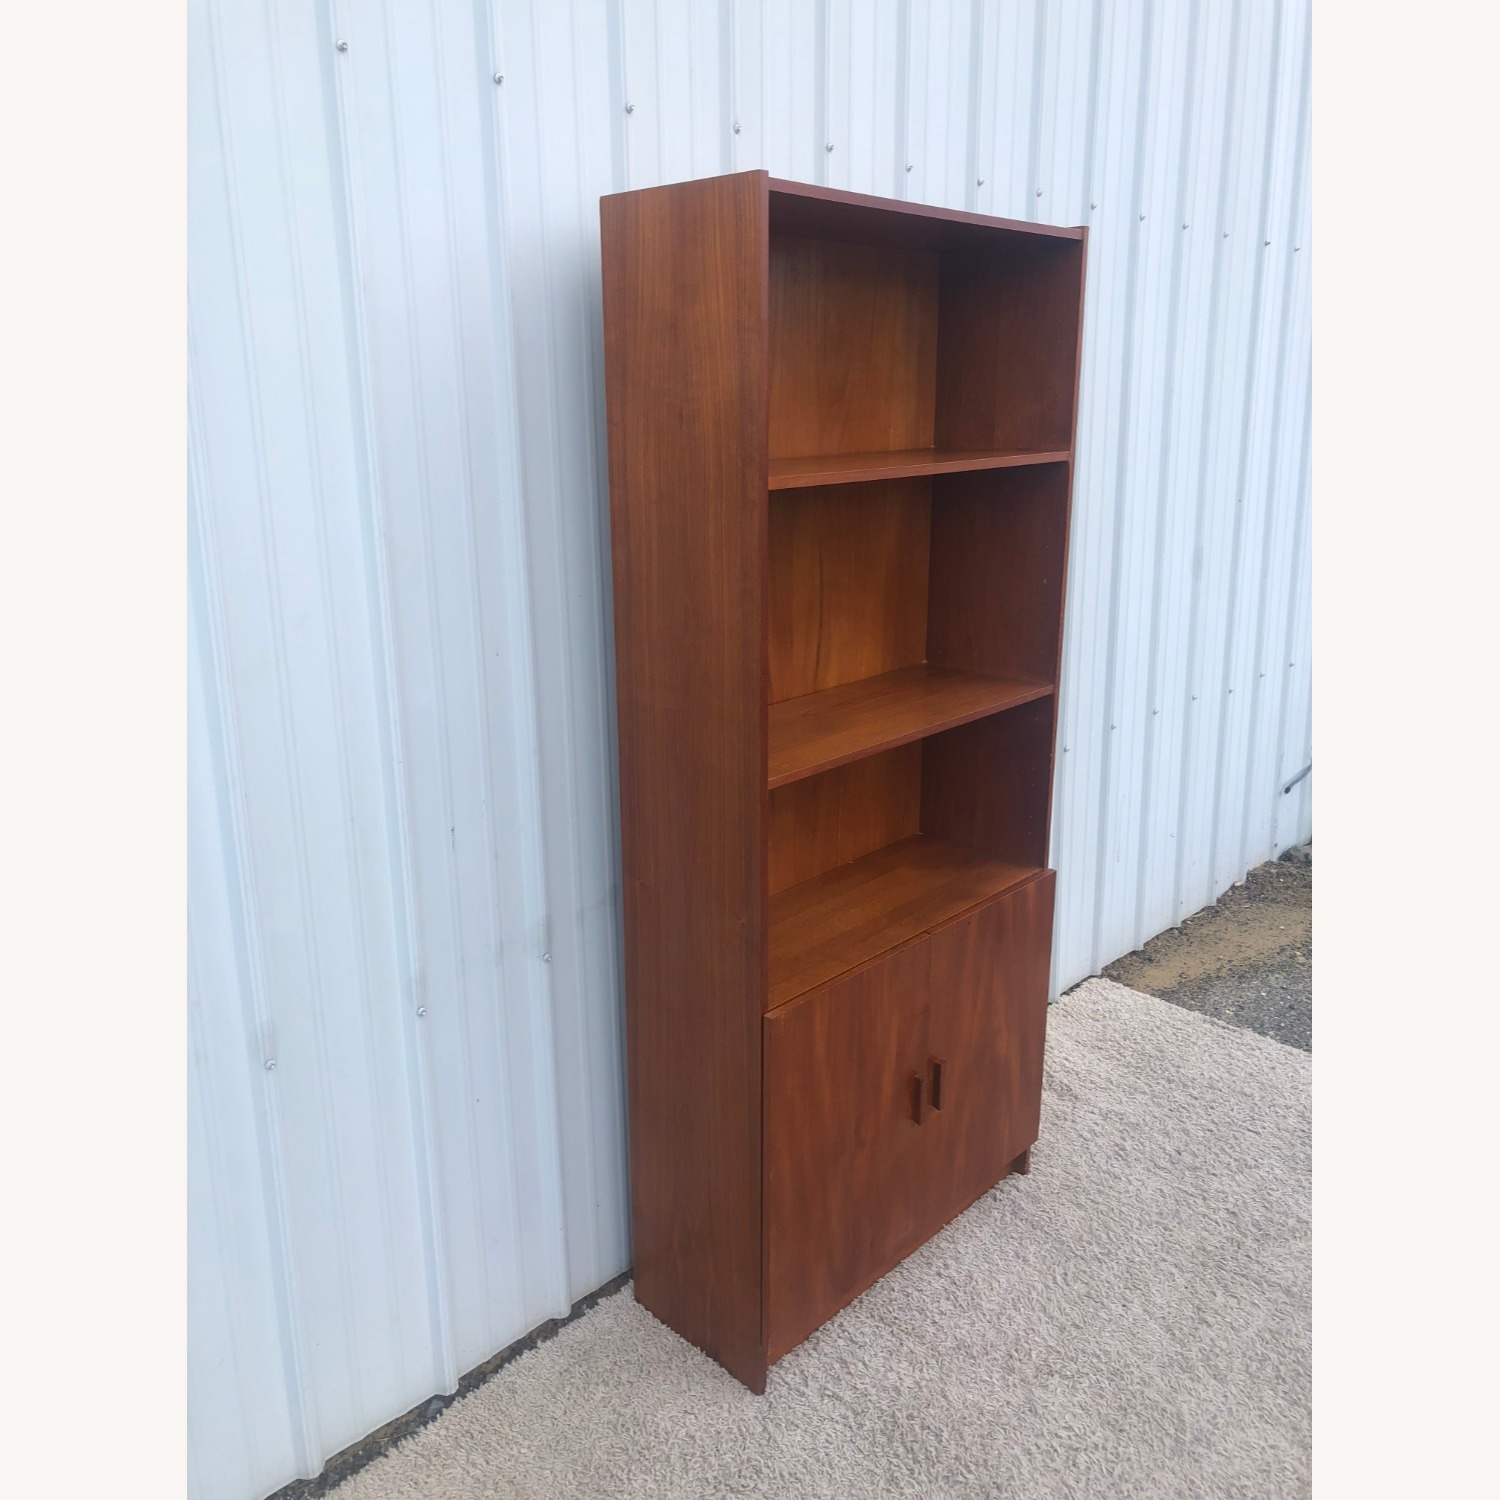 Danish Modern Teak Shelving with Cabinet - image-11